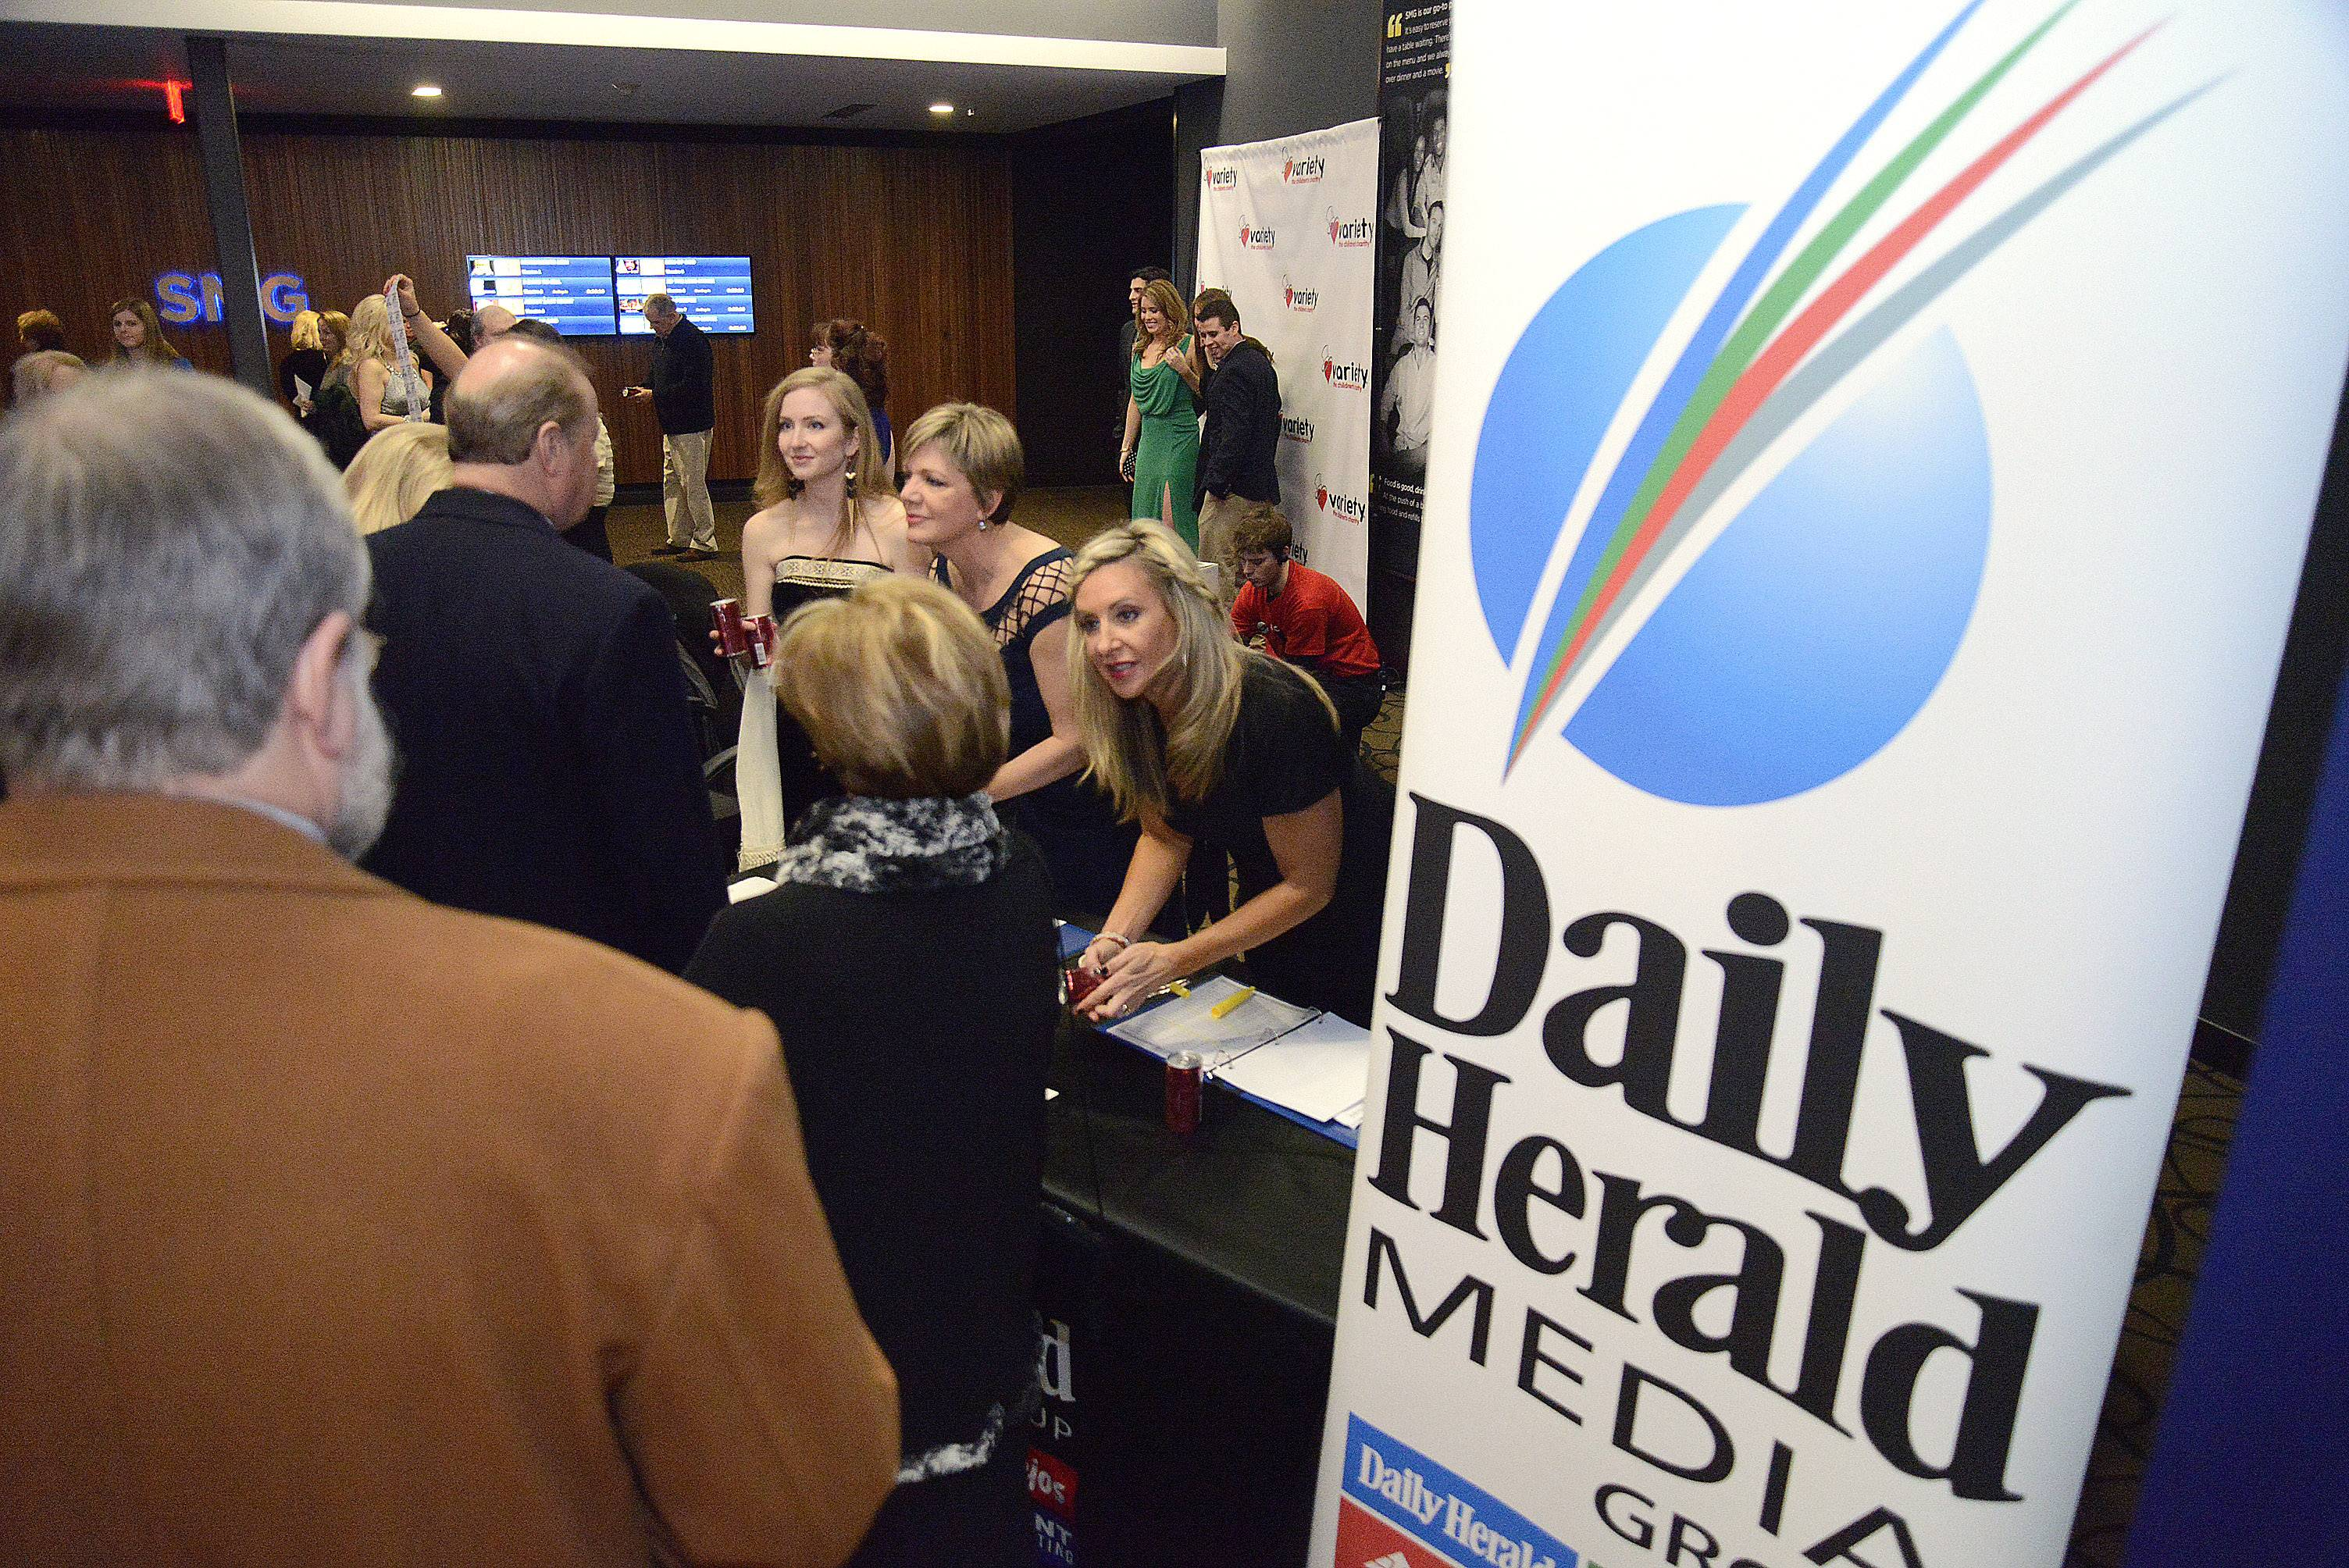 Daily Herald subscribers check in with Andrea Biewer at the 86th Academy Awards party hosted by Dann Gire at the Studio Movie Grill in Wheaton on Sunday, March 2.